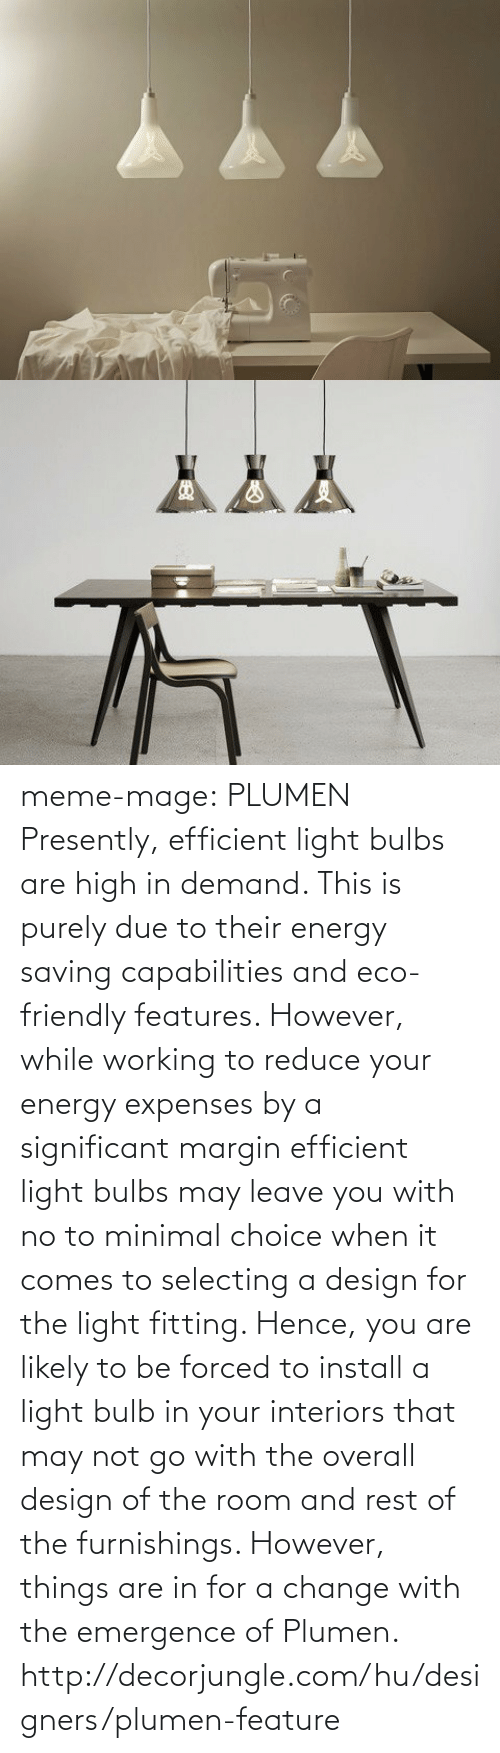 Designers: meme-mage:    PLUMEN Presently, efficient light bulbs are high in demand. This is purely due to their energy saving capabilities and eco-friendly features. However, while working to reduce your energy expenses by a significant margin efficient light bulbs may leave you with no to minimal choice when it comes to selecting a design for the light fitting. Hence, you are likely to be forced to install a light bulb in your interiors that may not go with the overall design of the room and rest of the furnishings. However, things are in for a change with the emergence of Plumen. http://decorjungle.com/hu/designers/plumen-feature